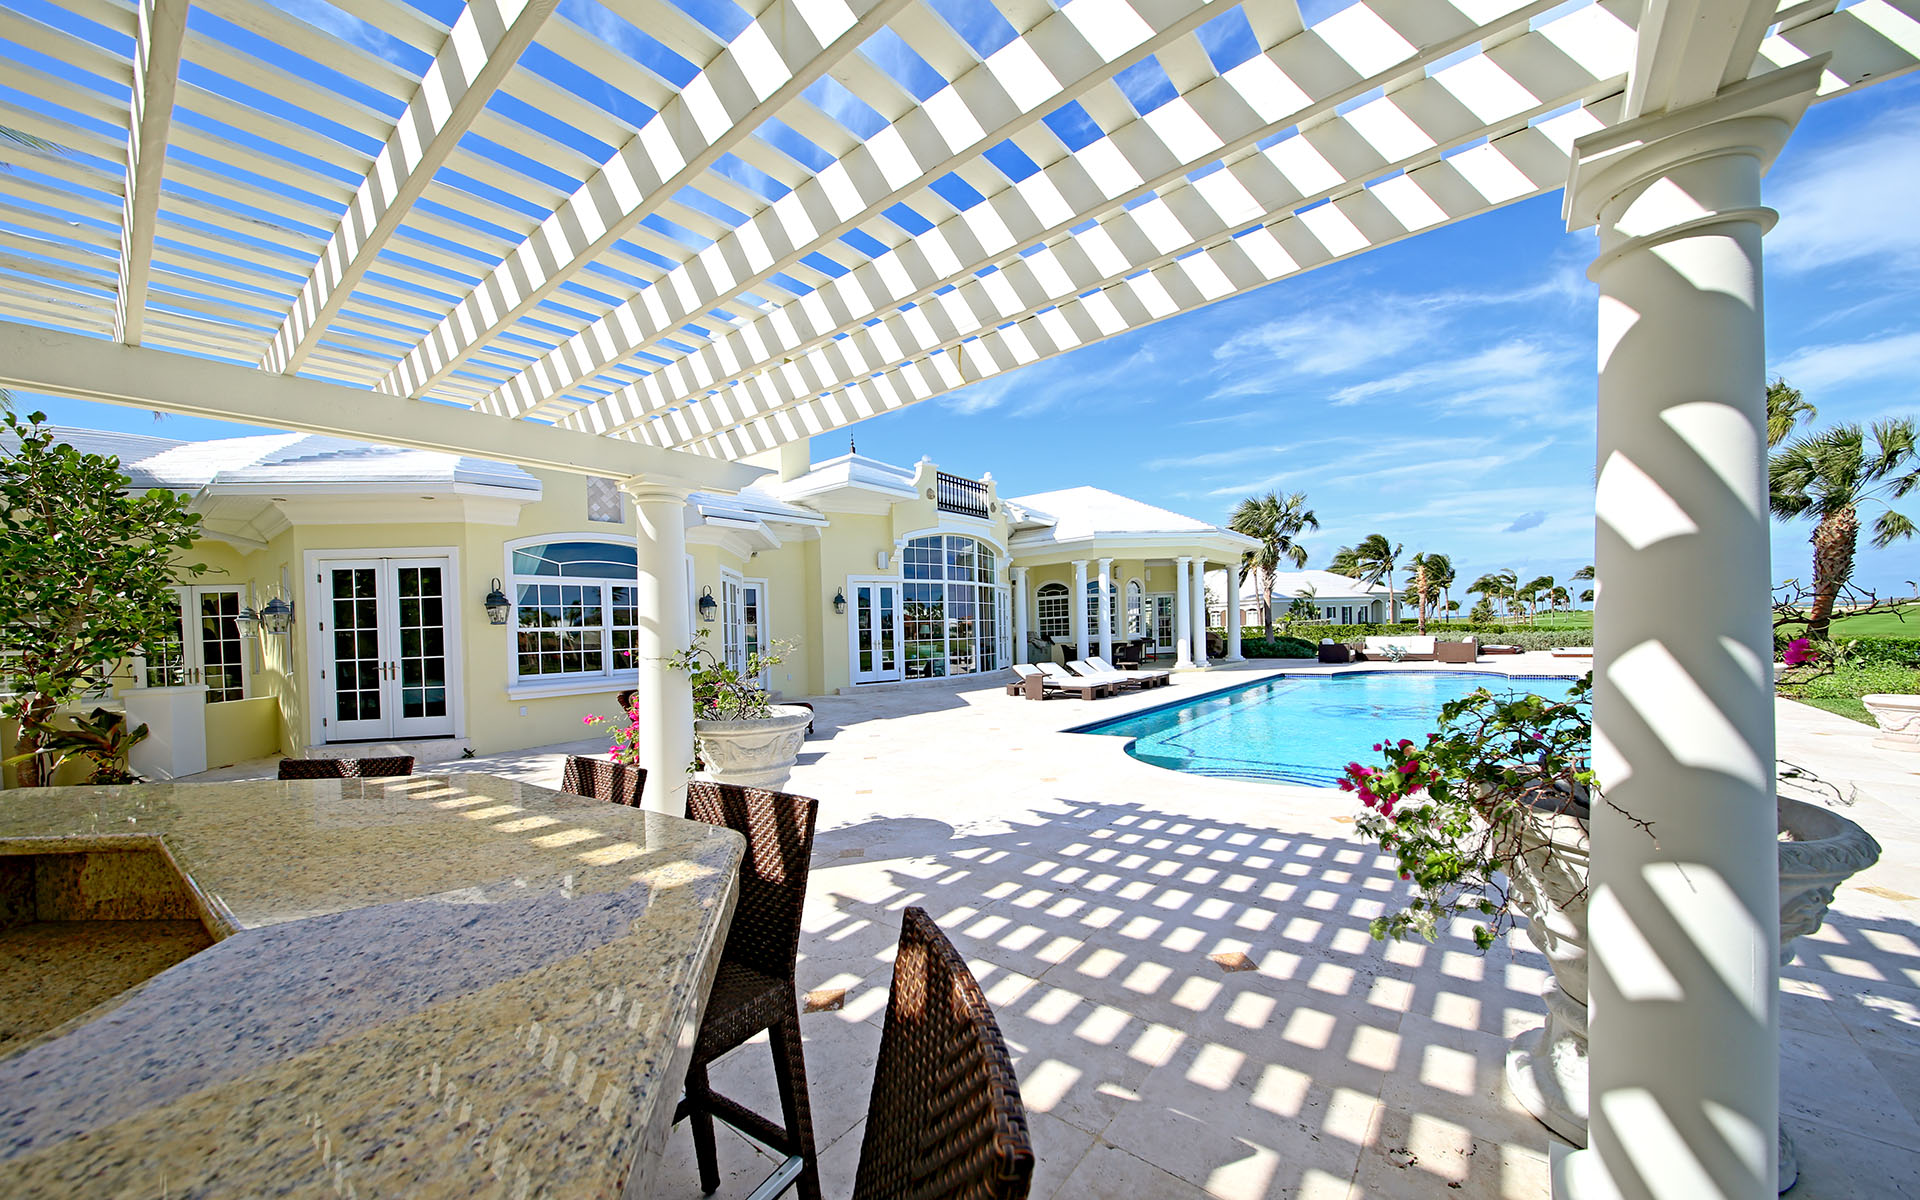 Casa Unifamiliar por un Alquiler en Ocean Club Estates home on large lot with Panoramic views Ocean Club Estates, Paradise Island, Nueva Providencia / Nassau Bahamas